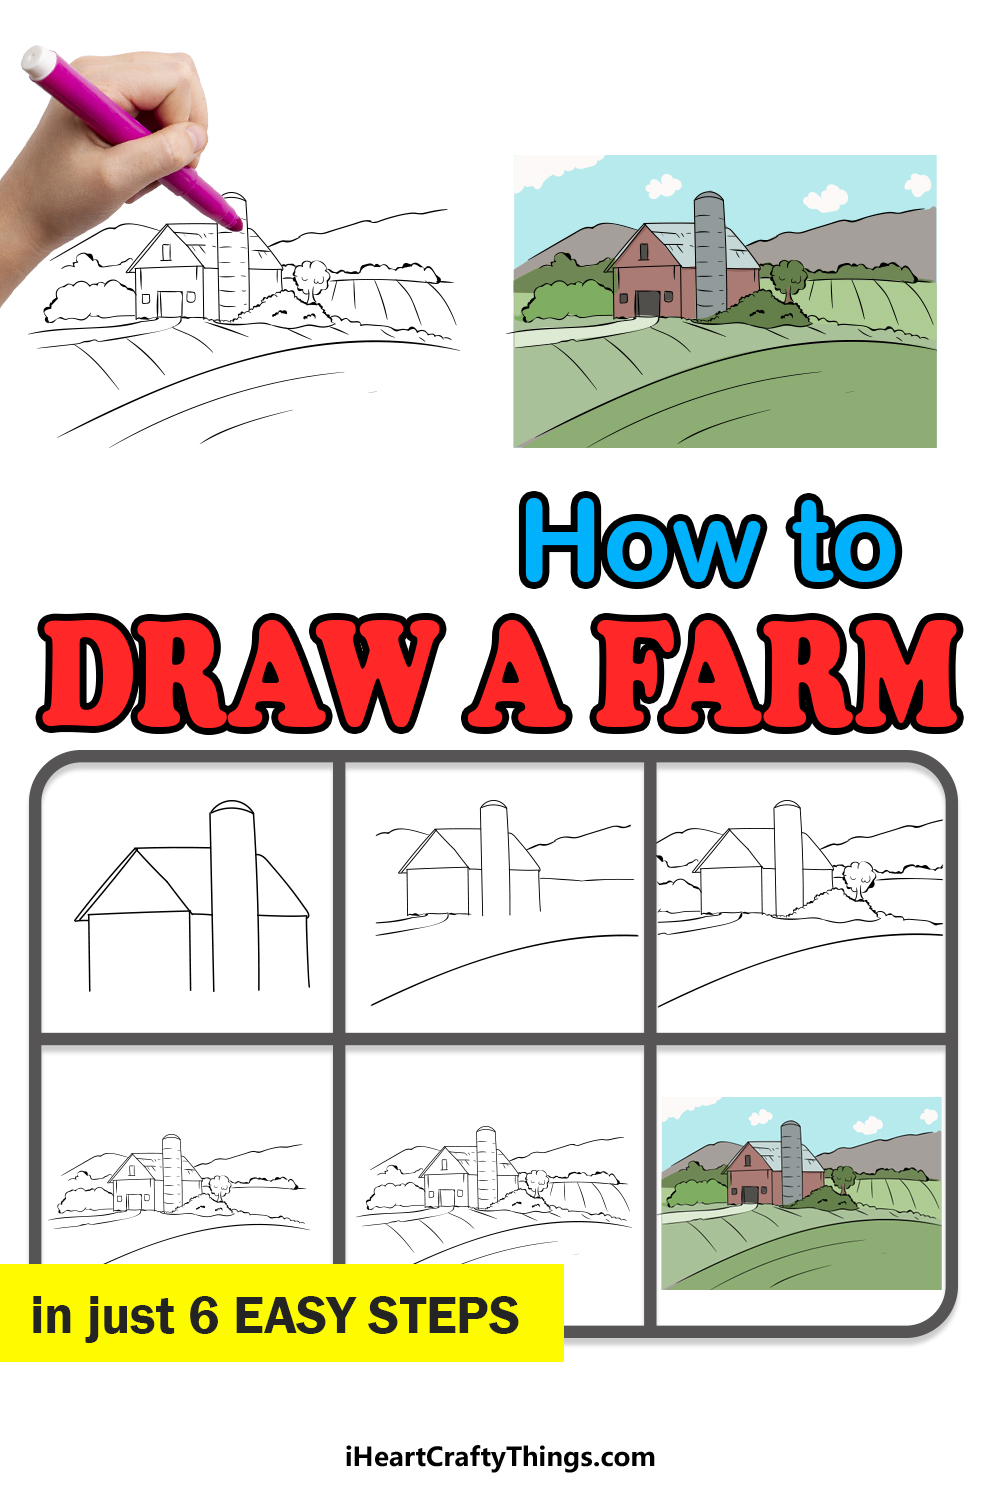 how to draw a farm in 6 easy steps